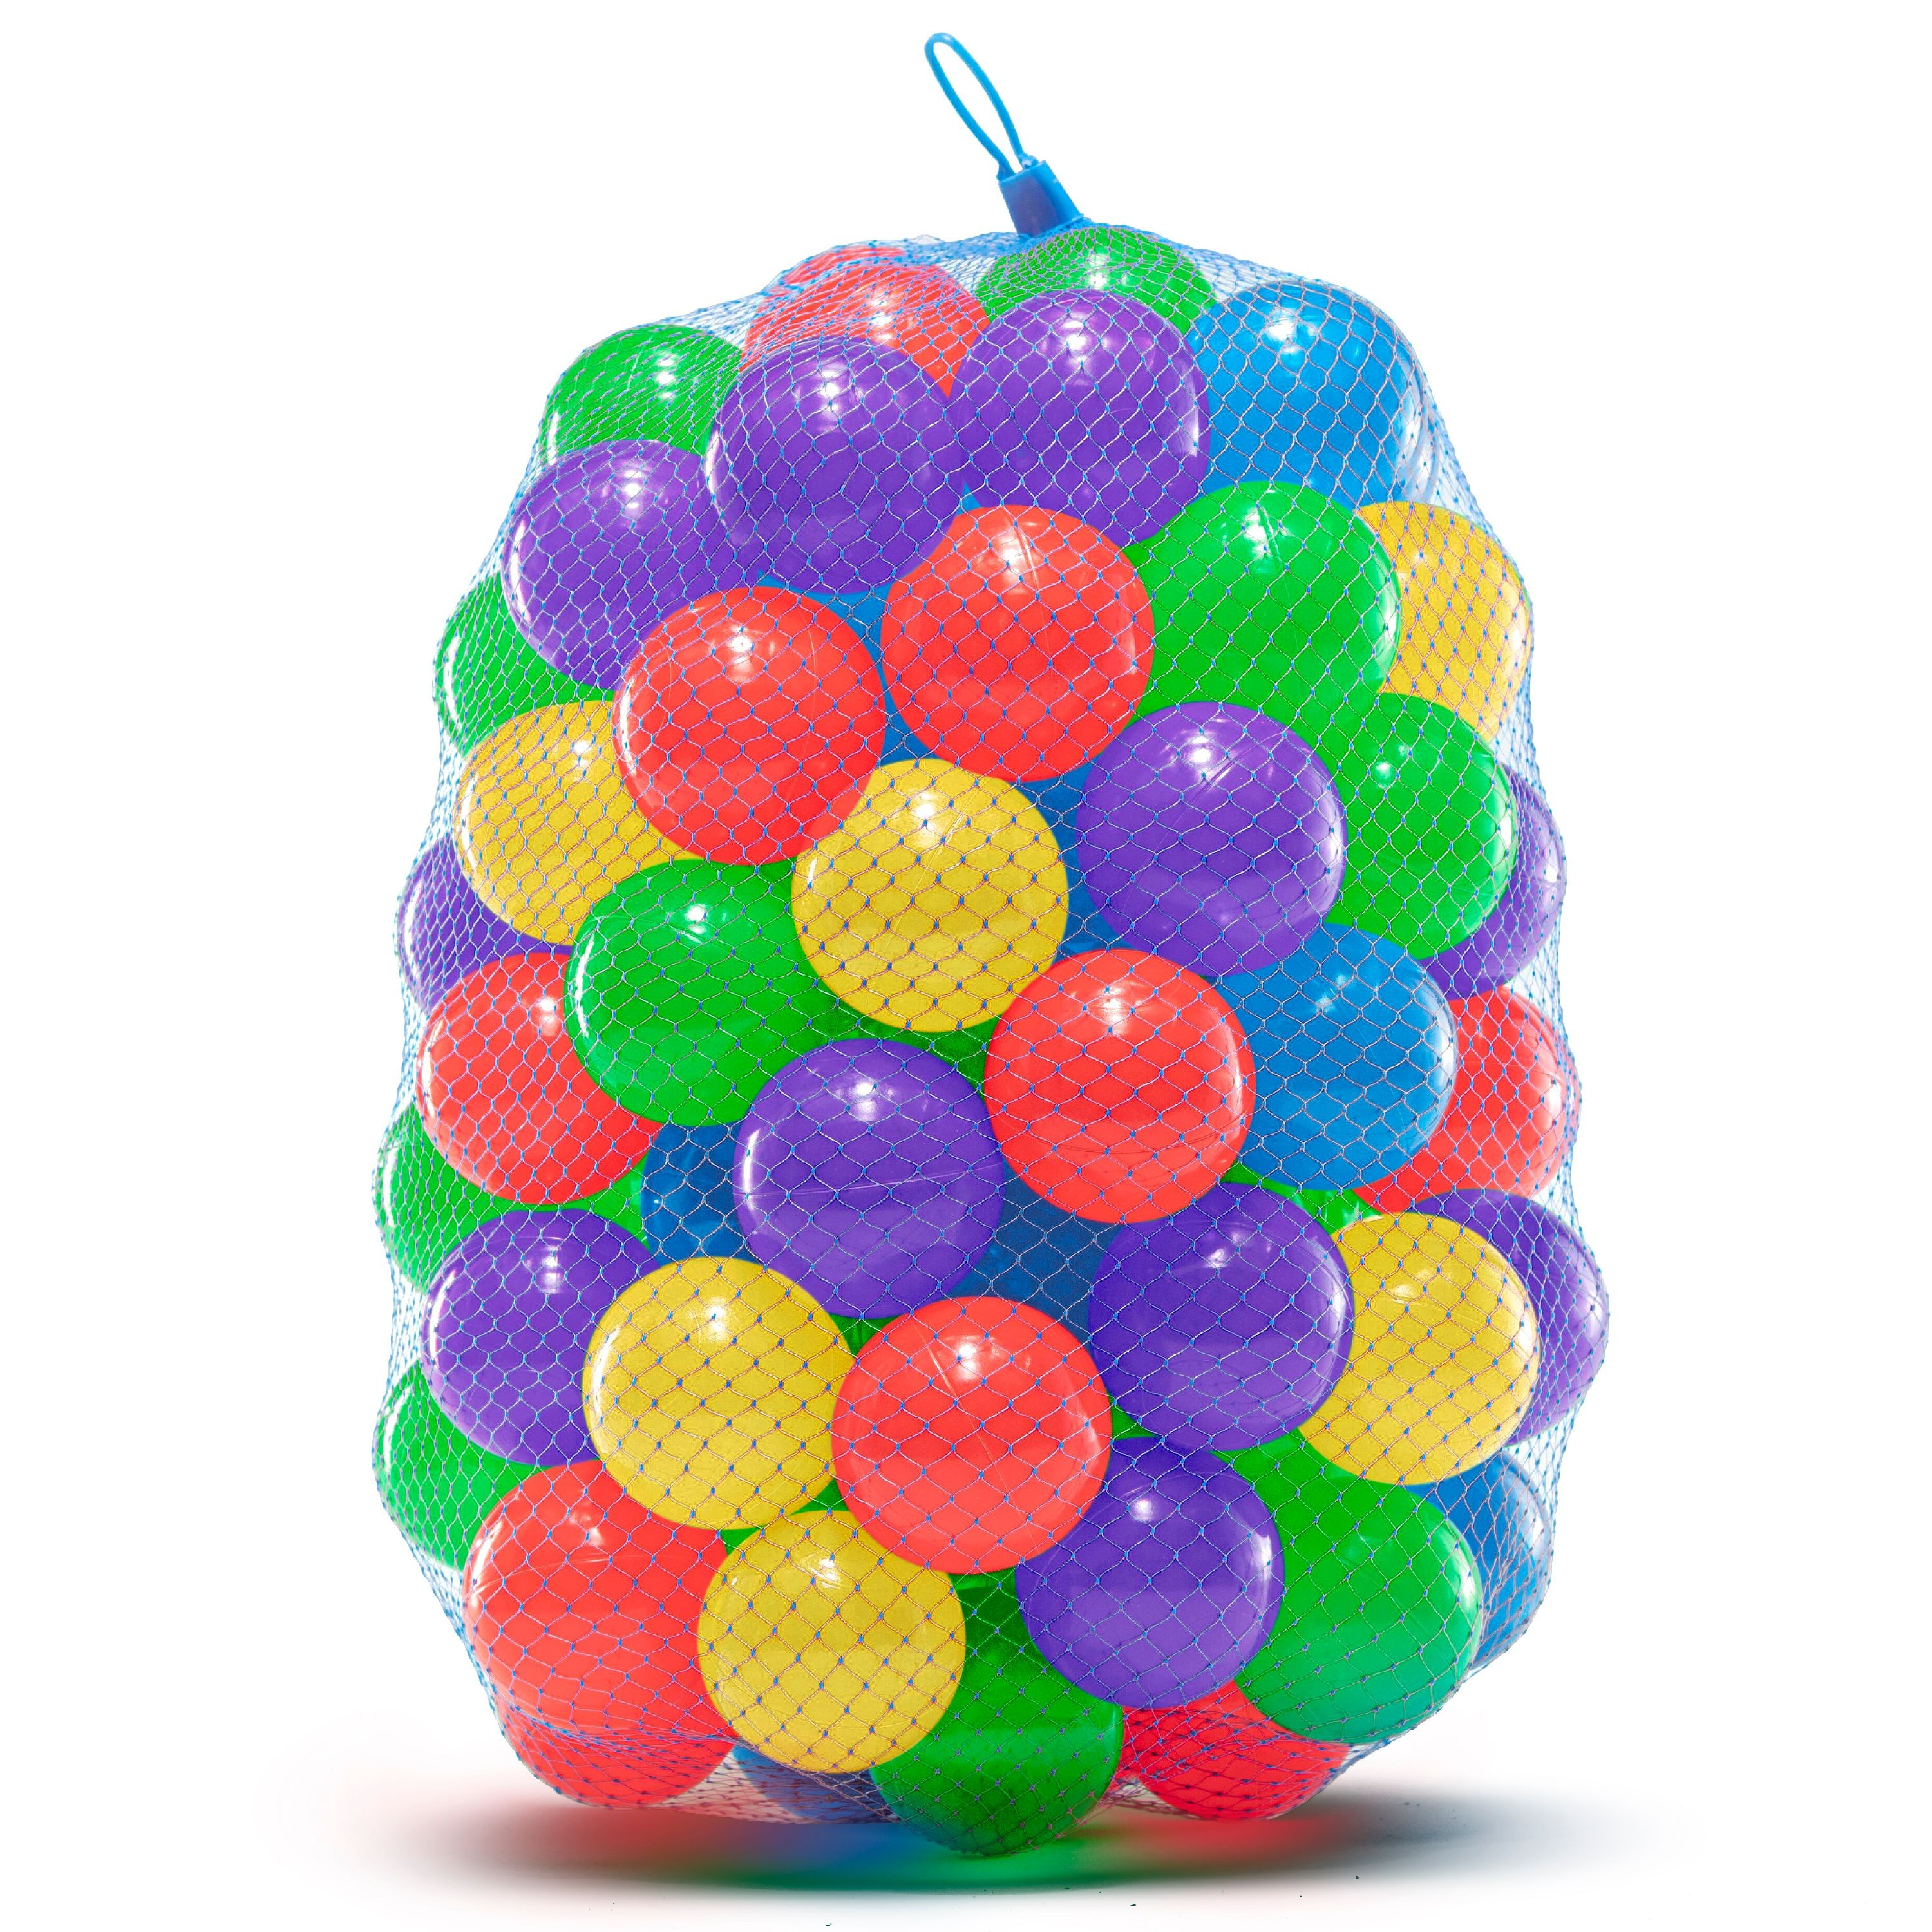 100 Soft Plastic Ball Pit Balls for Trampoline, Play Tent, Ball Pools, Indoor & Outdoor Play   Crush Proof, Non-Toxic